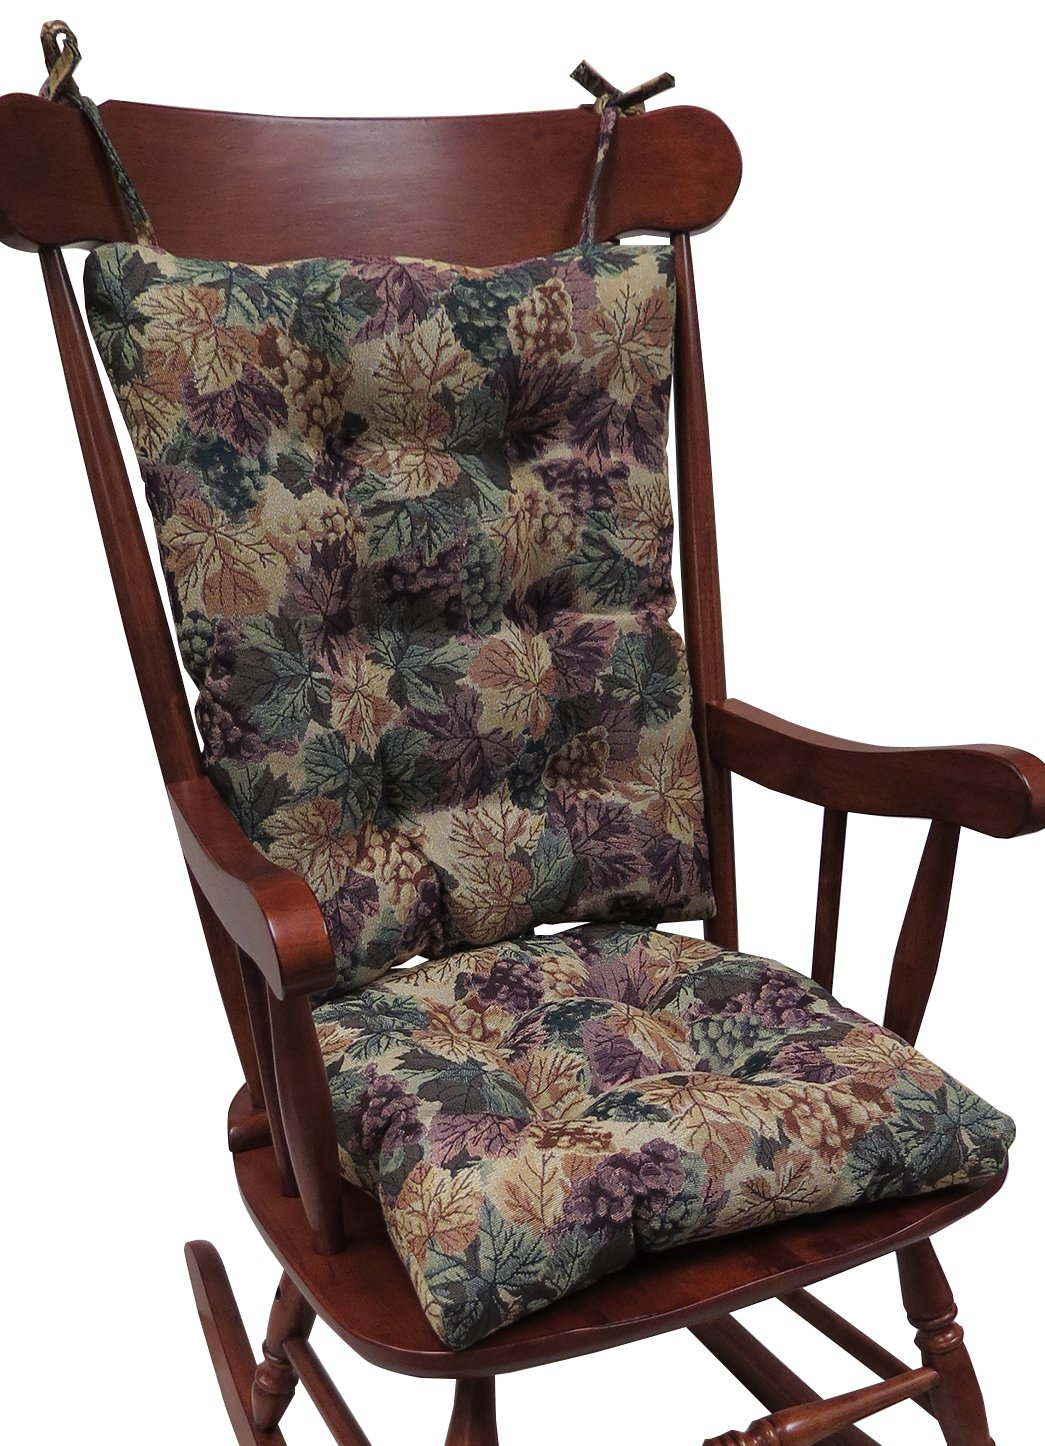 Klear Vu The Gripper Non-Slip Cabernet Tapestry Jumbo Rocking Chair Cushions